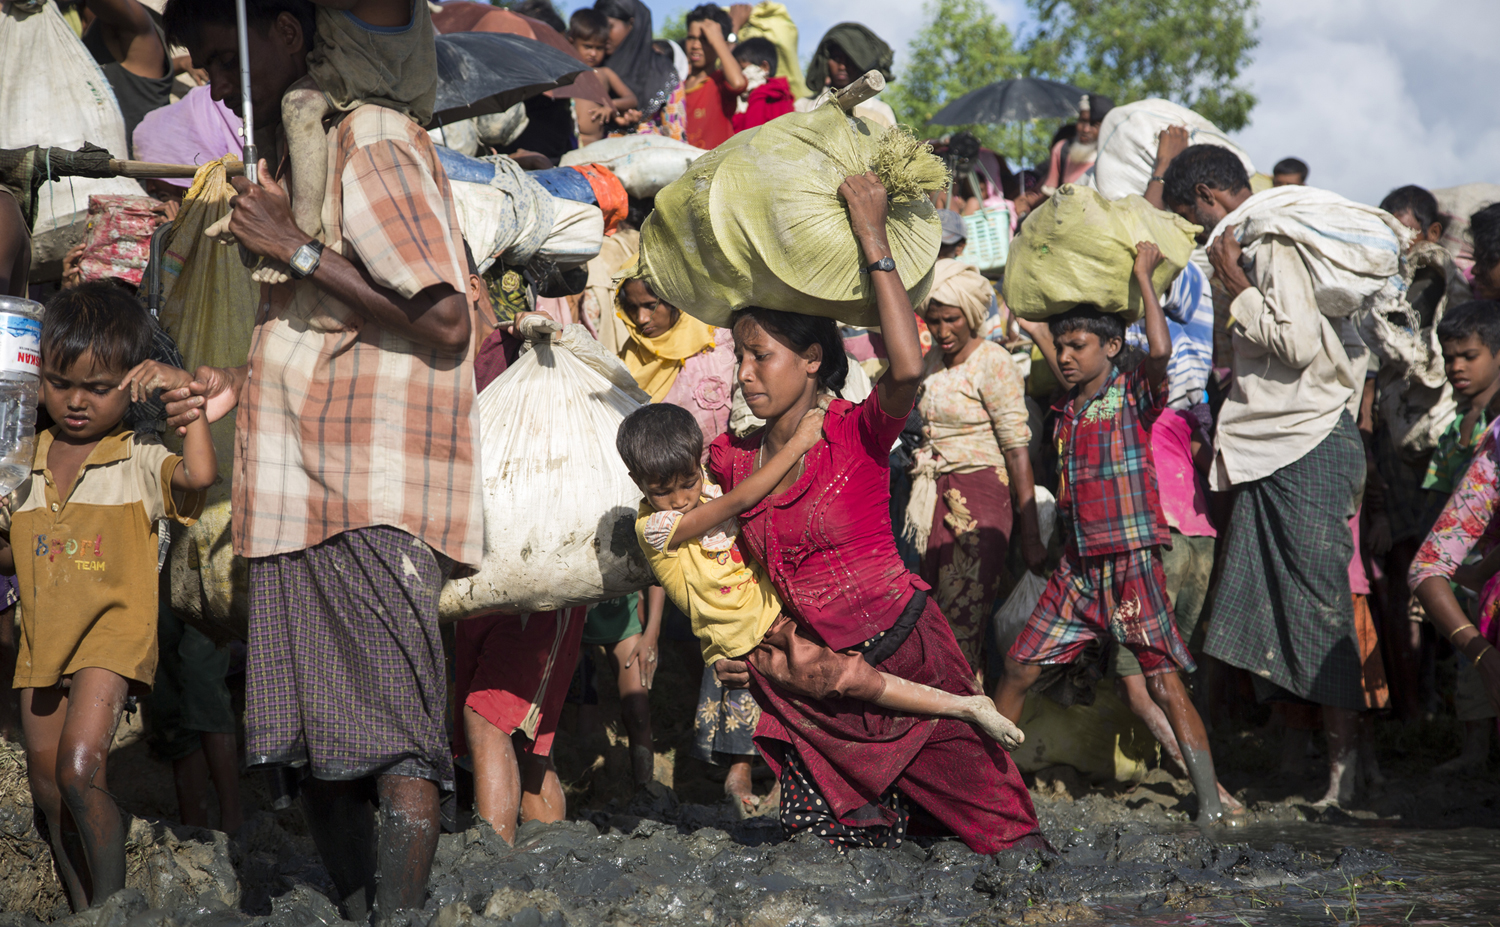 UN investigators say genocide is still taking place against Rohingya Muslims in Myanmar